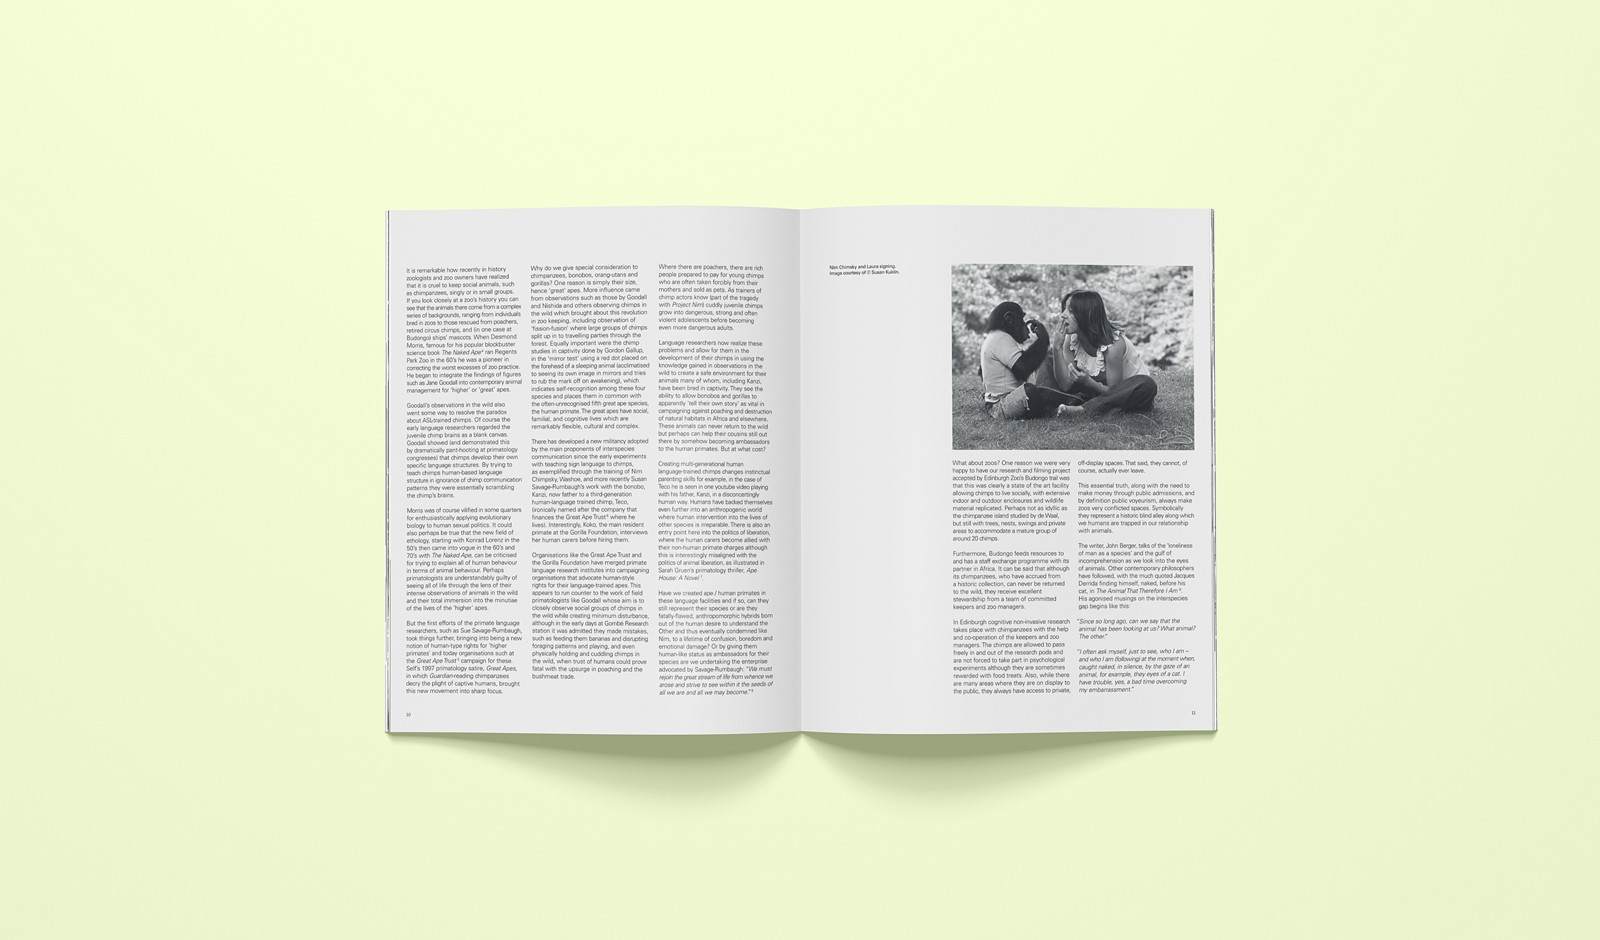 Art publication: Primate Cinema